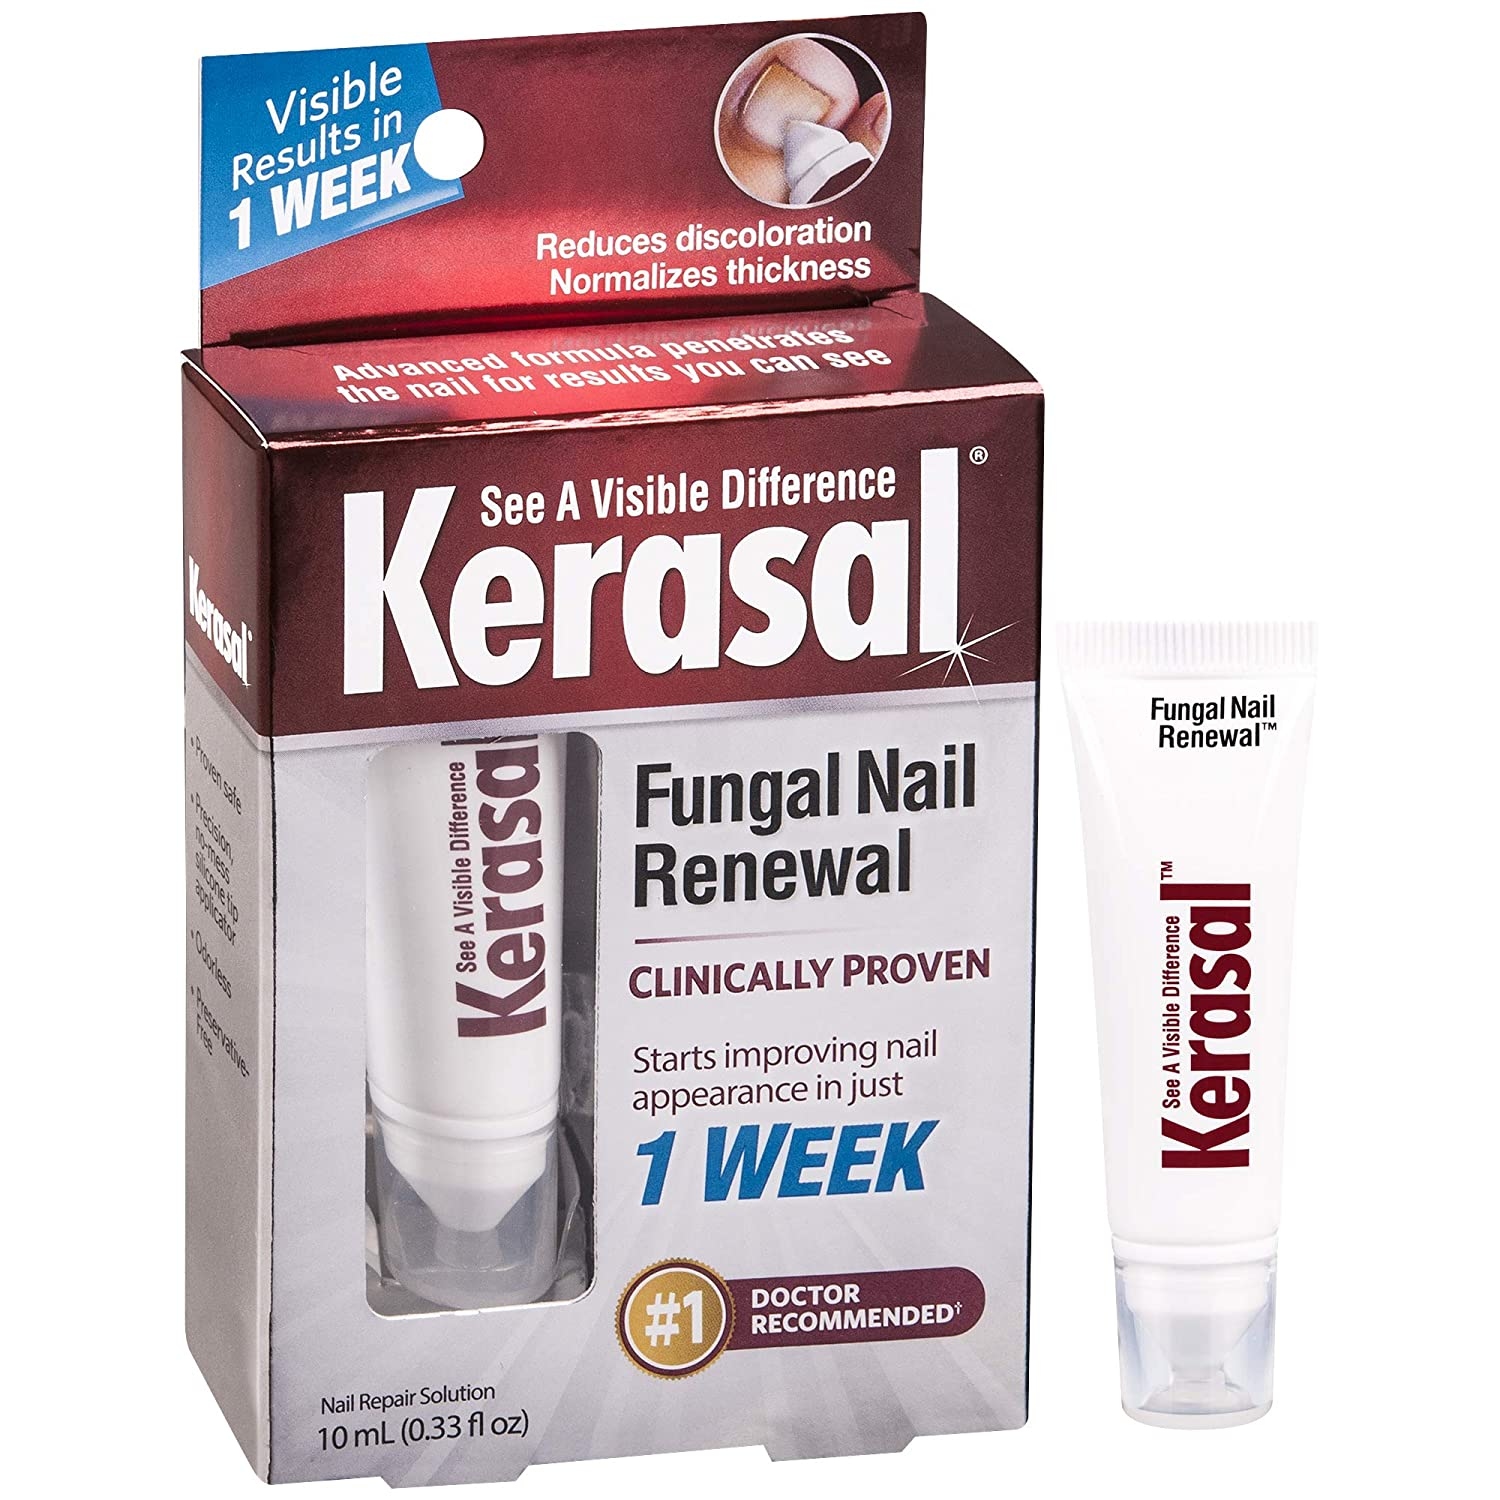 Kerasal Fungal Nail Renewal - Visible results start in just 1 week, 10ml